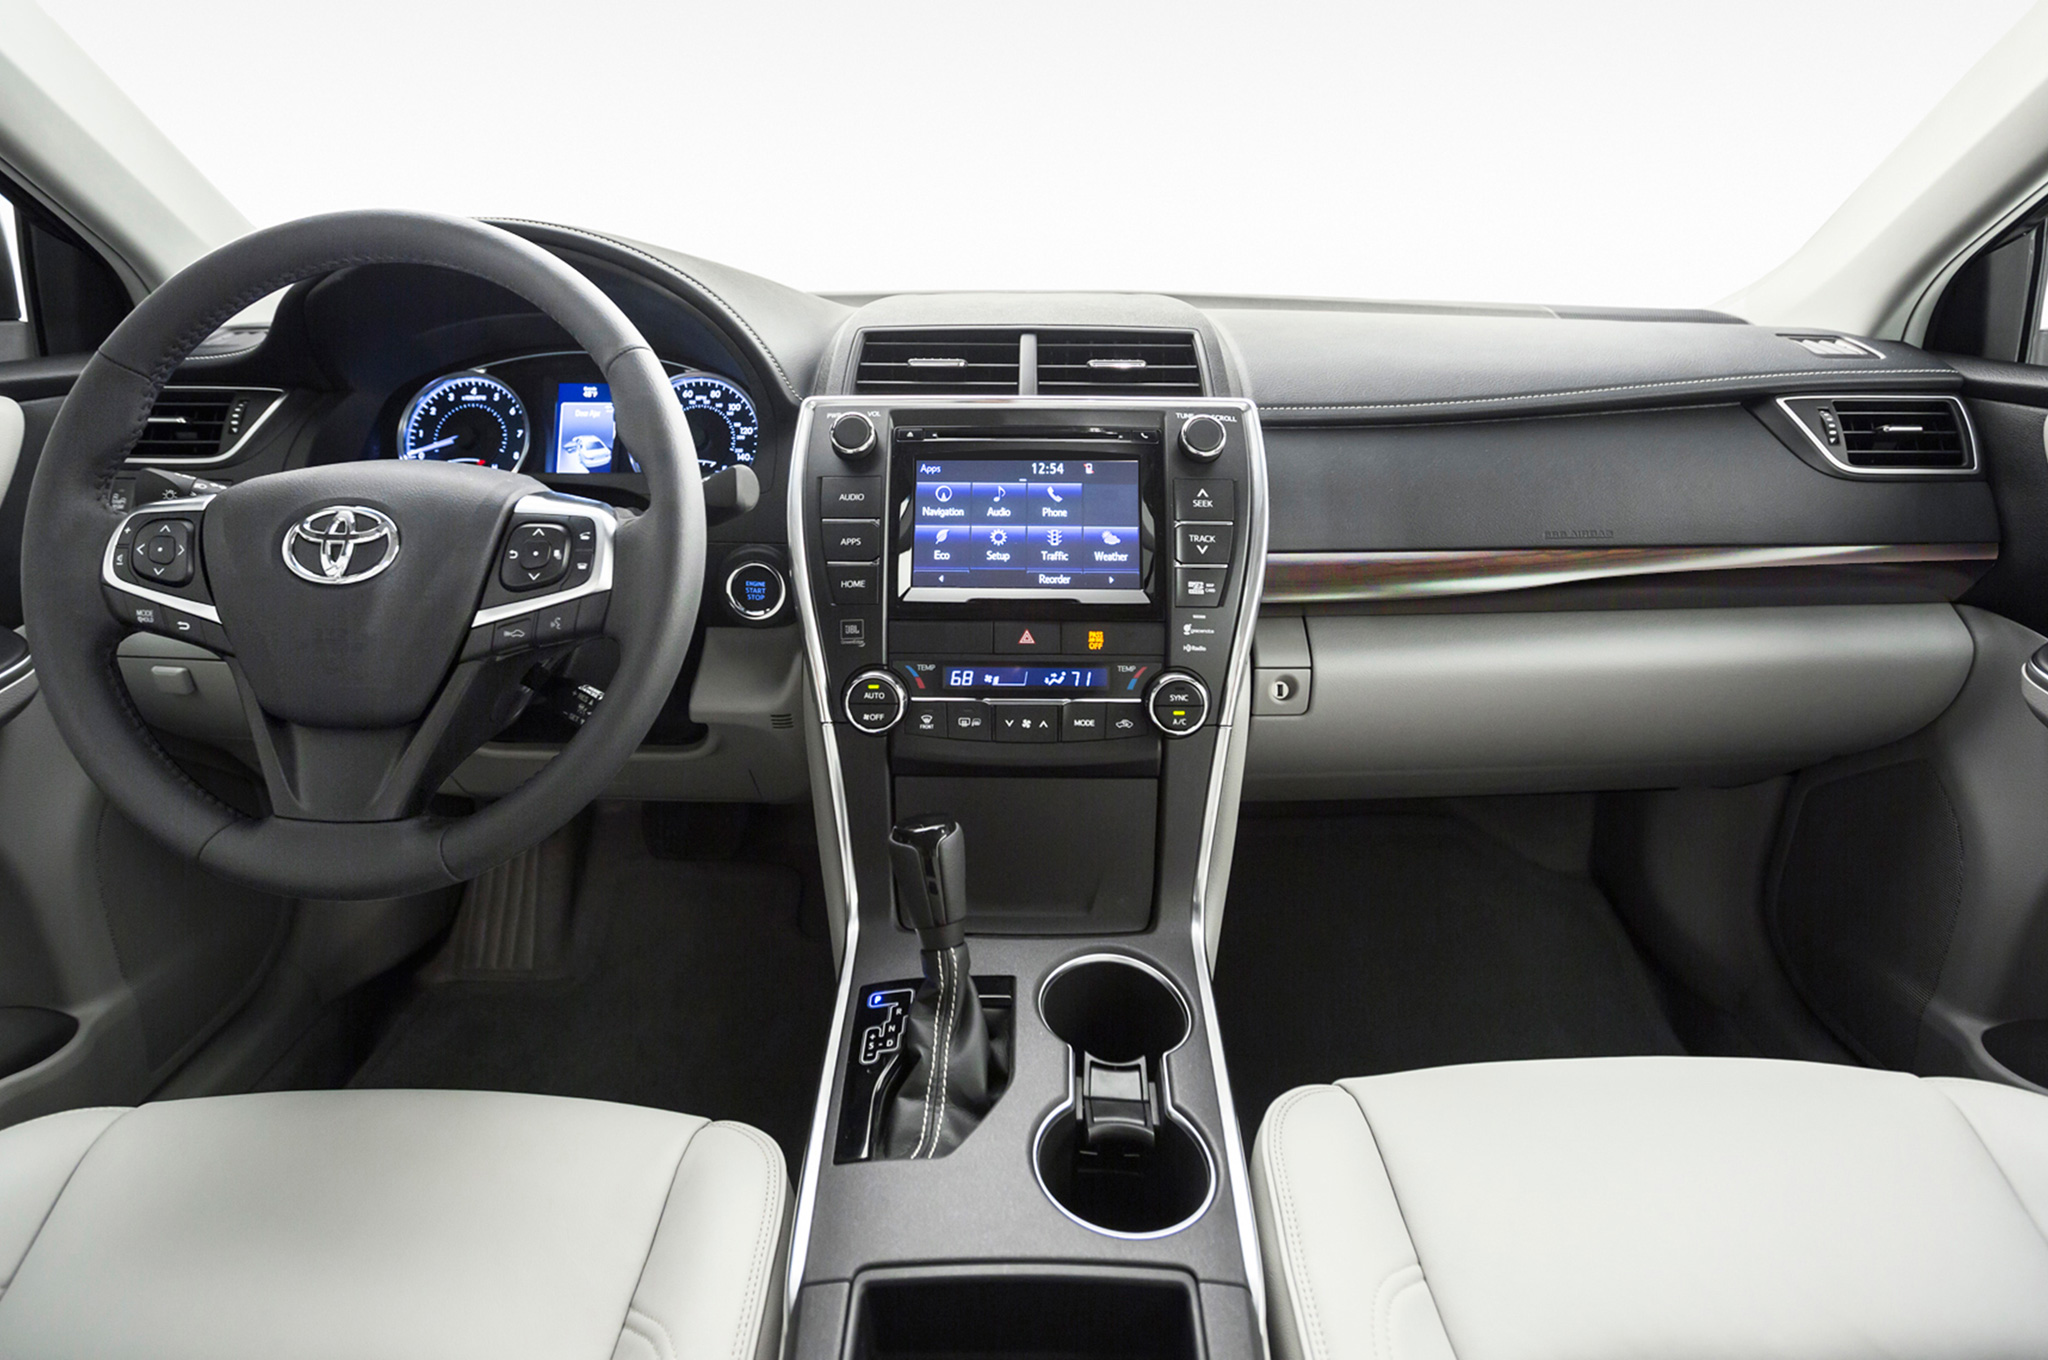 2015 Toyota Sienna Interior Performance Price Tax Deduction For Donating Used Toyota Sienna